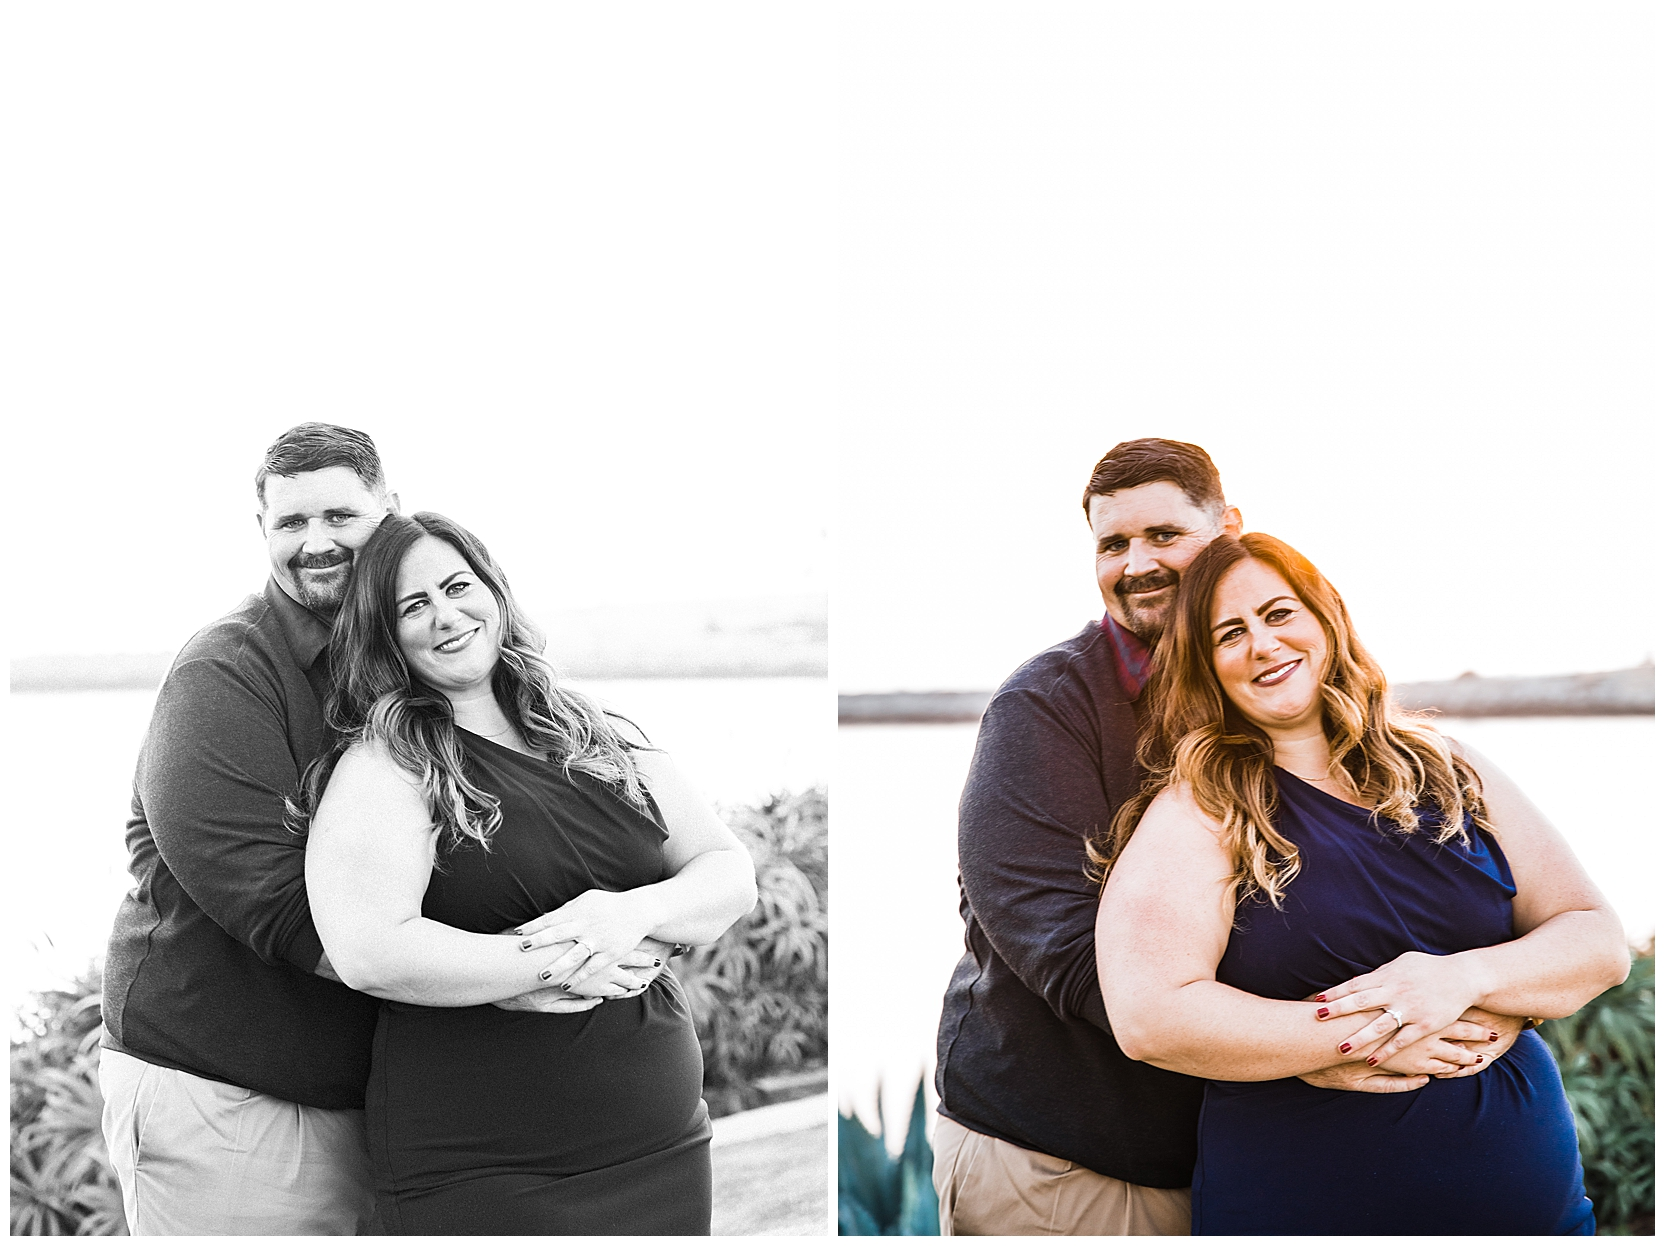 jessicafredericks_huntingtonbeach_proposal_sunset_engagement_0027.jpg